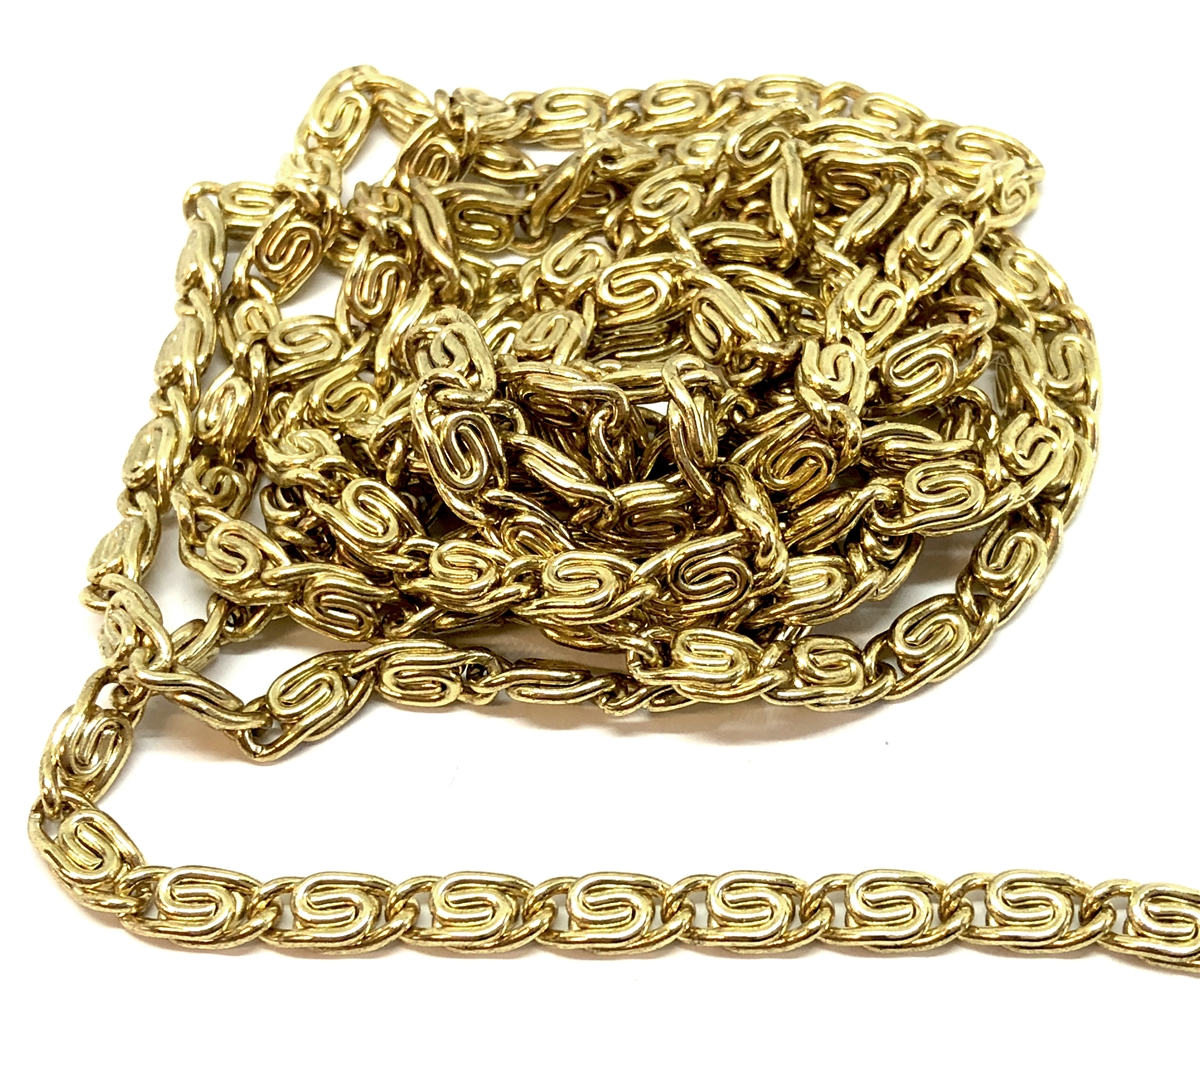 brass chain for jewelry making